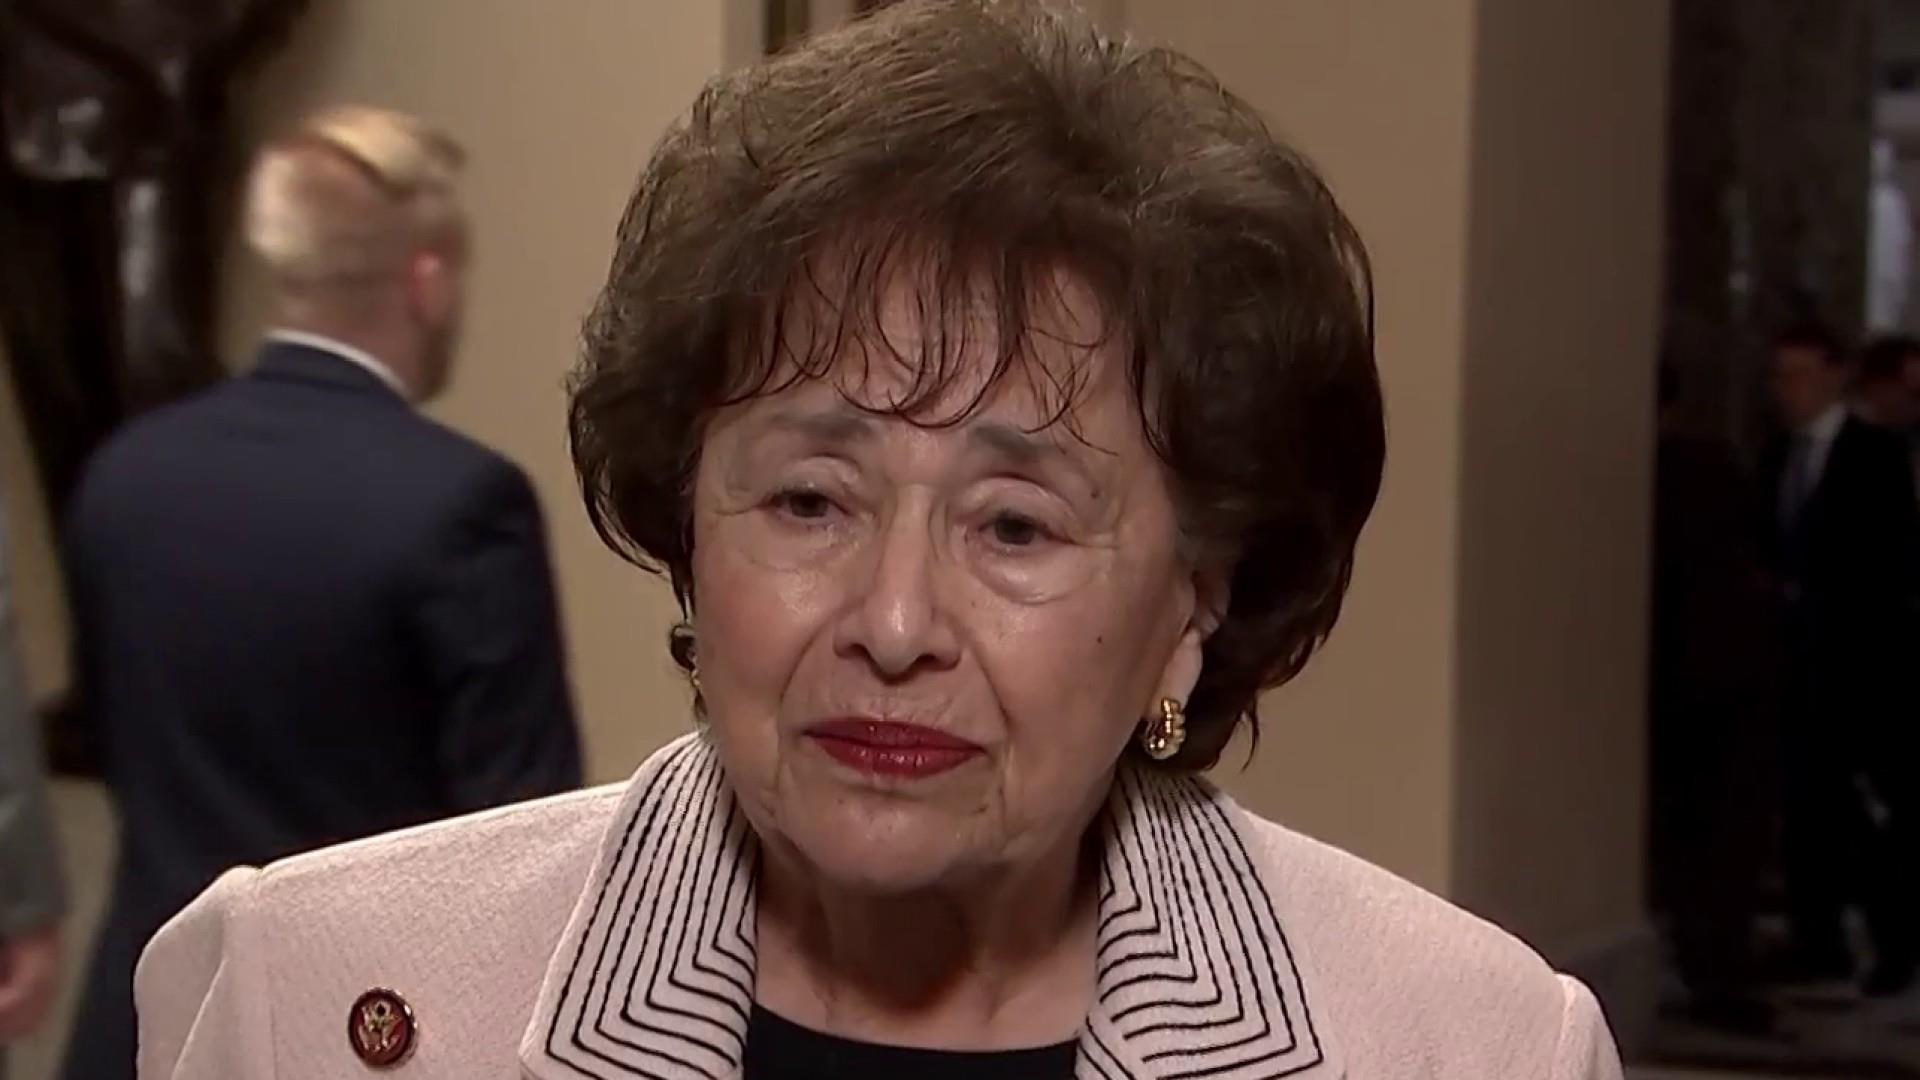 Rep. Lowey: You can't operate government by blackmail